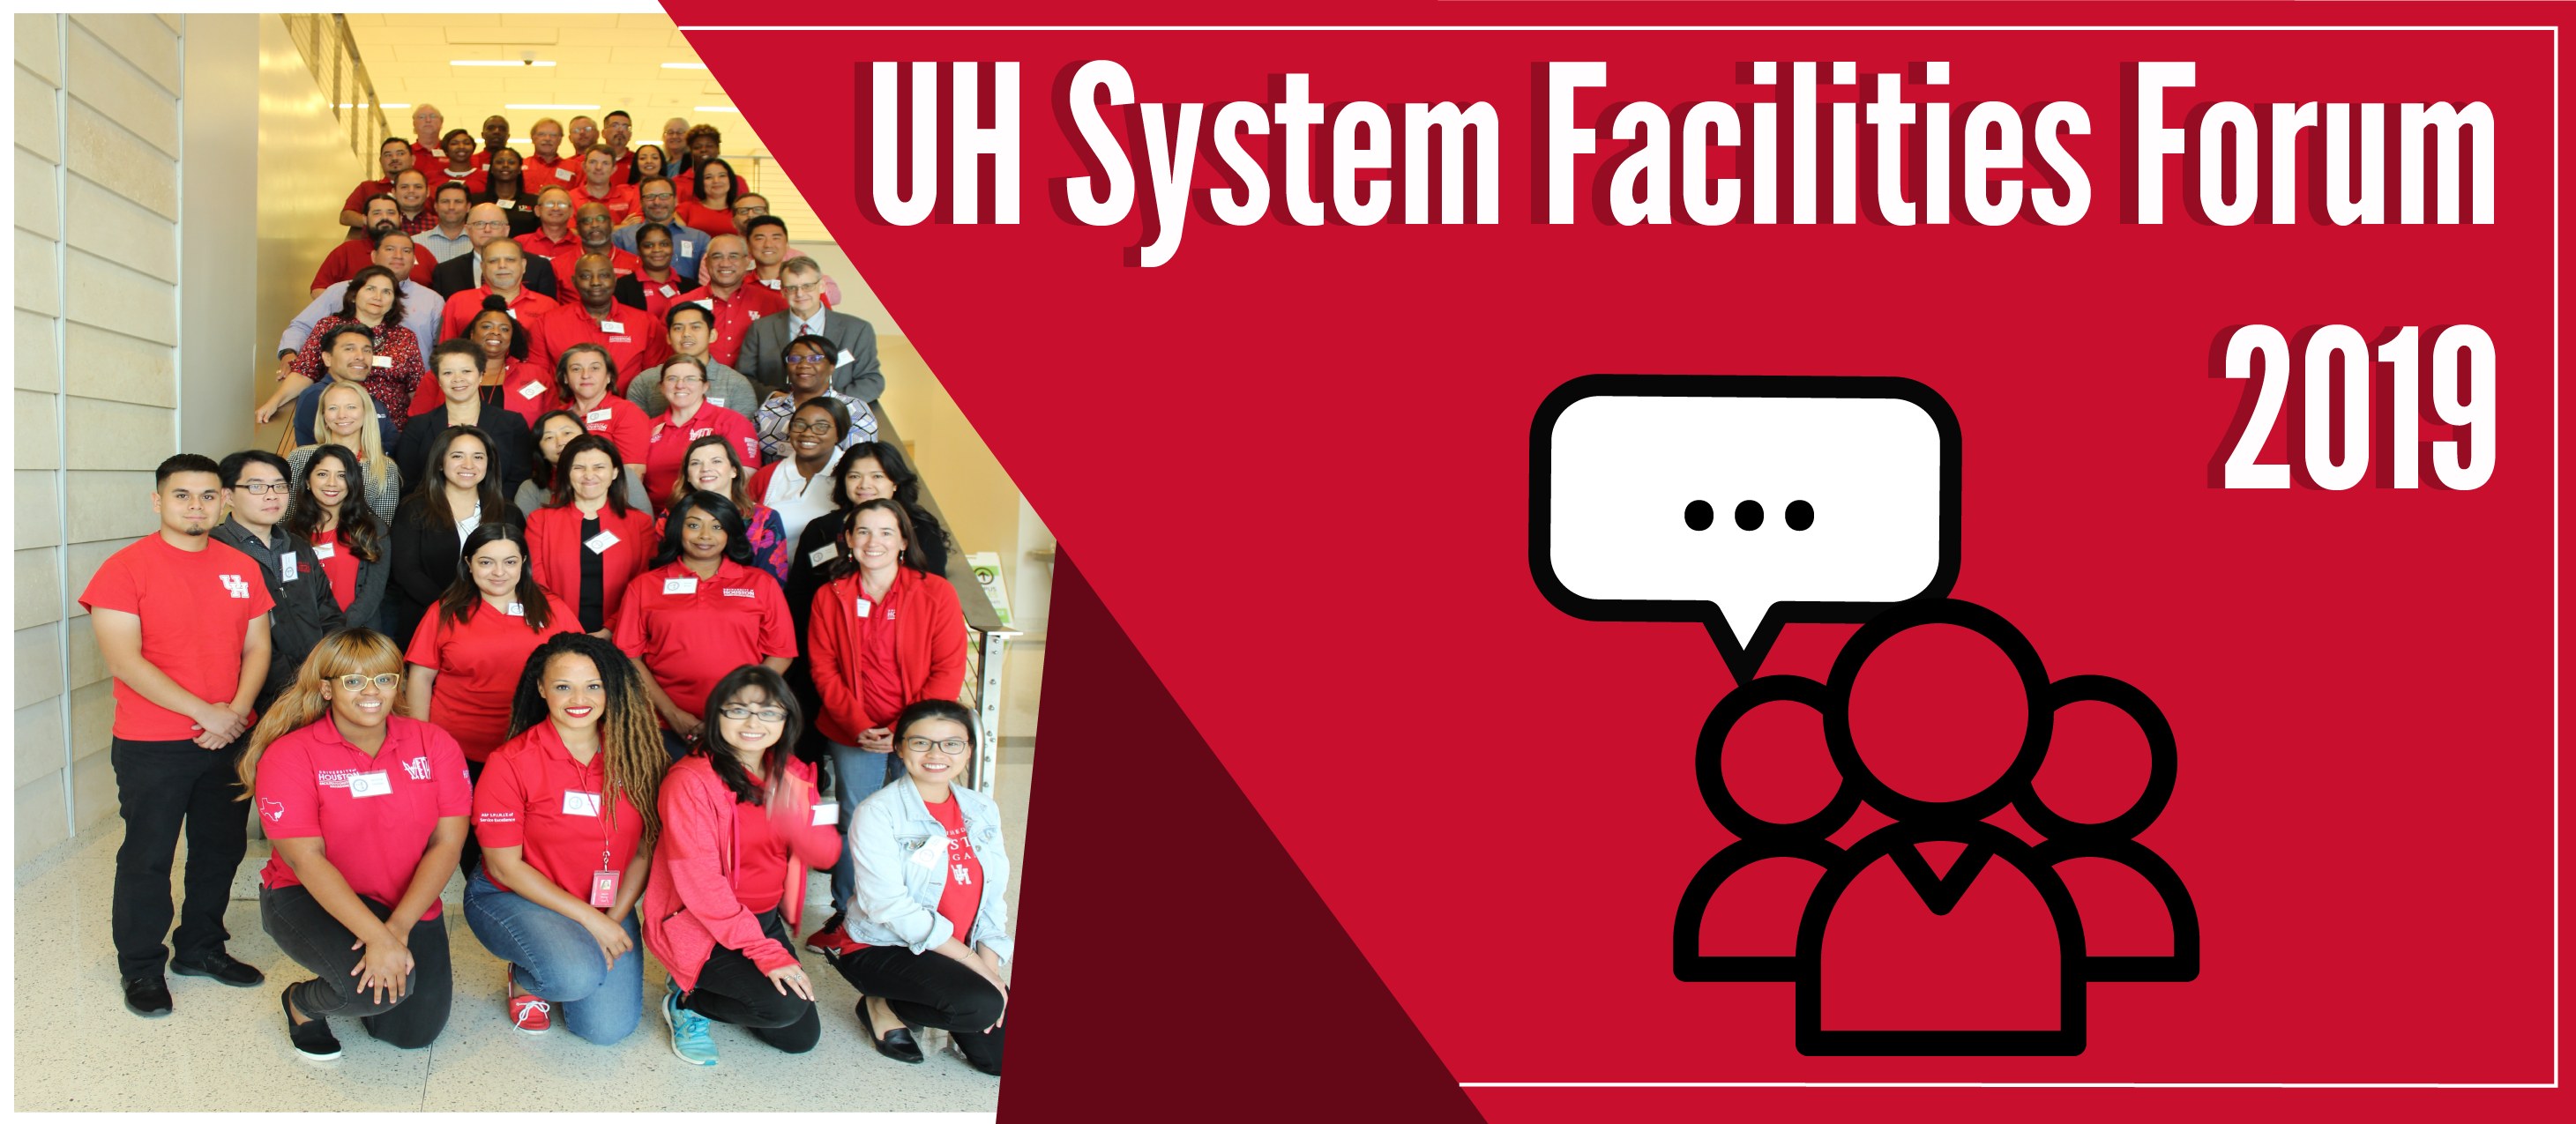 UH System Facilities Forum 2019